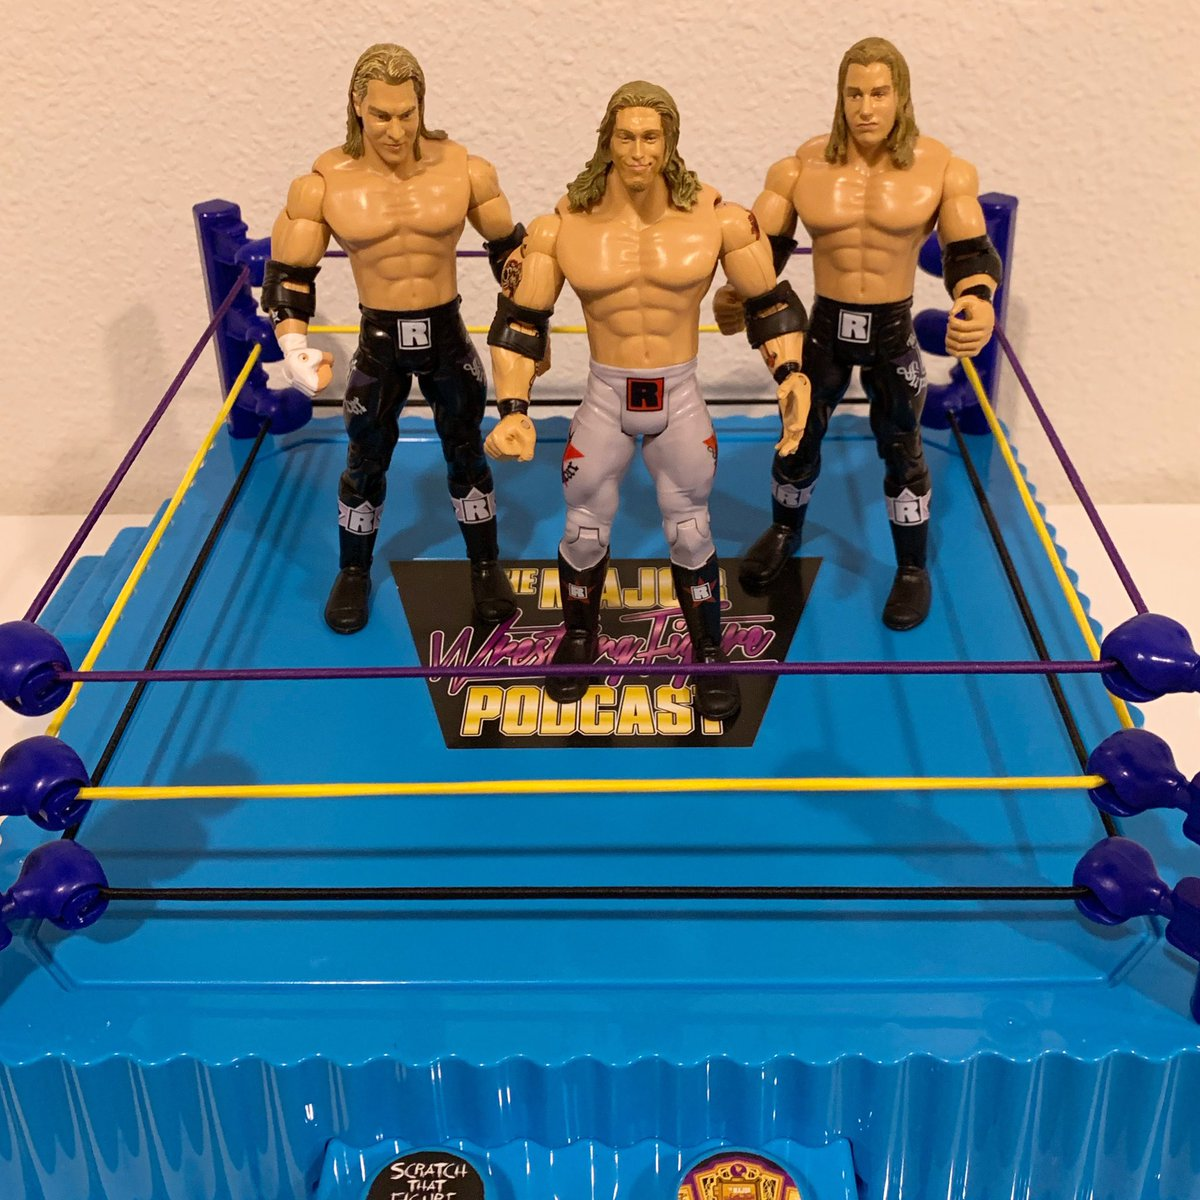 Who thinks @ringsidec should make an @edgeratedr exclusive figure with interchangeable @thecurthawkins & @ZackRyder heads?! #scratchthatfigureitch #edgeheads<br>http://pic.twitter.com/FWEQWOmO2p